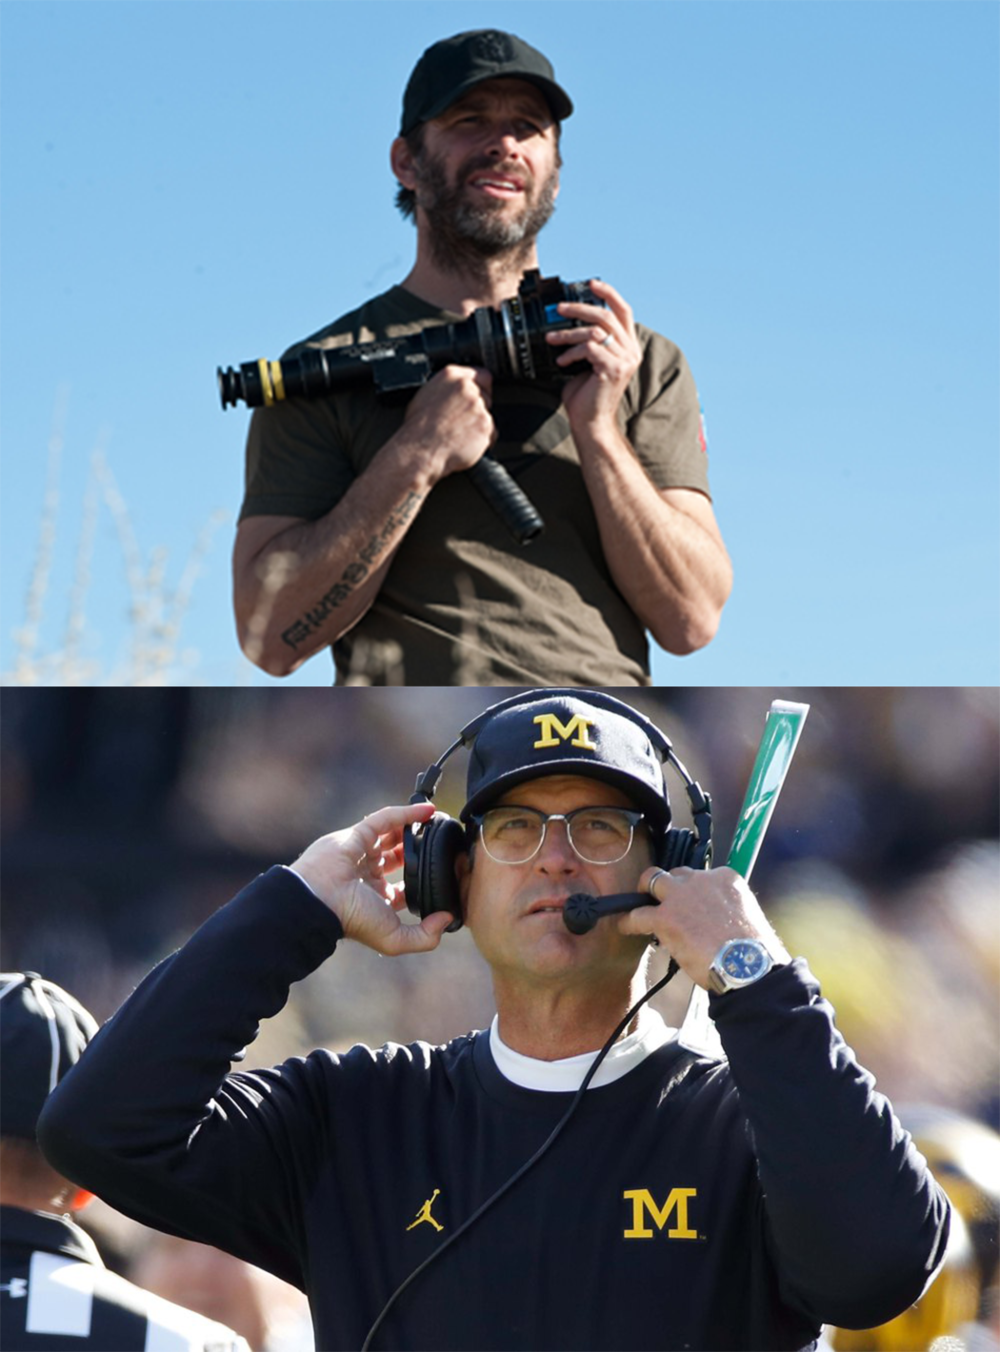 Both Zack Snyder and Jim Harbaugh are accomplished and successful professionals at their jobs. They don't want or need your suggestions on how to do it. Period.